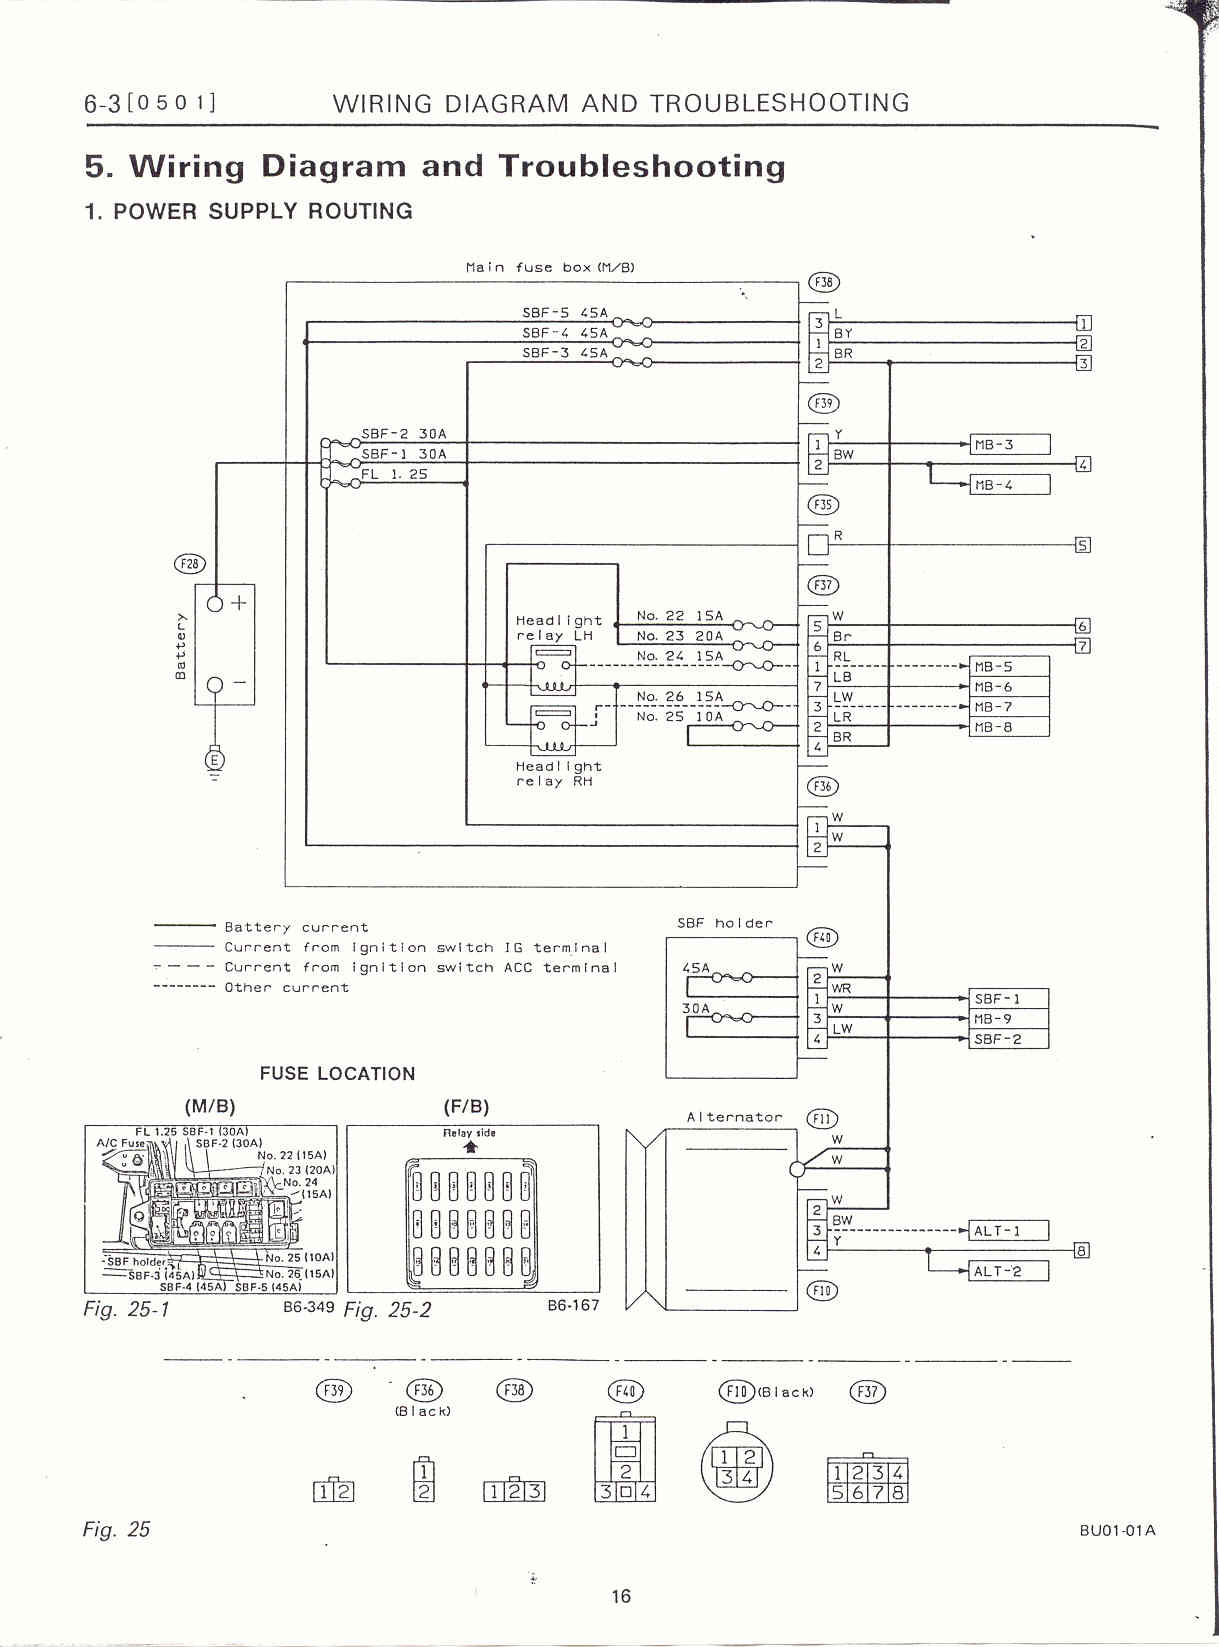 Power Supply Routing Page 1